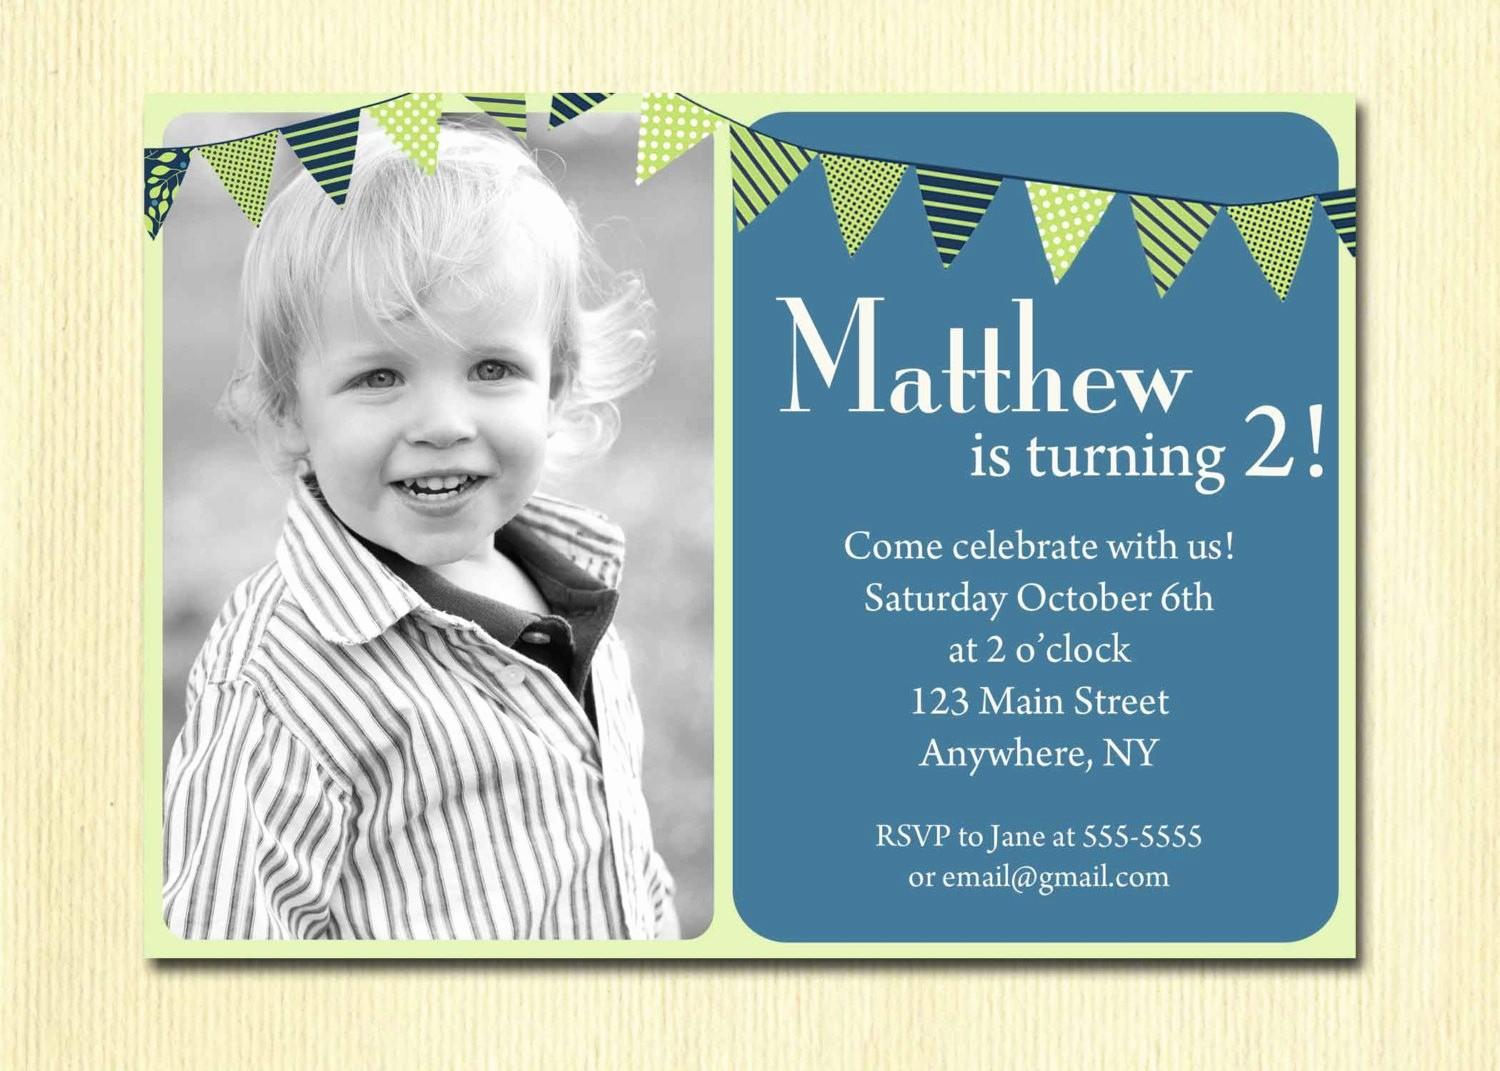 1st birthday invitation quotes for baby boy ; invitation-for-1st-birthday-wording-fresh-baby-boy-first-birthday-invitation-quotes-lovely-1st-birthday